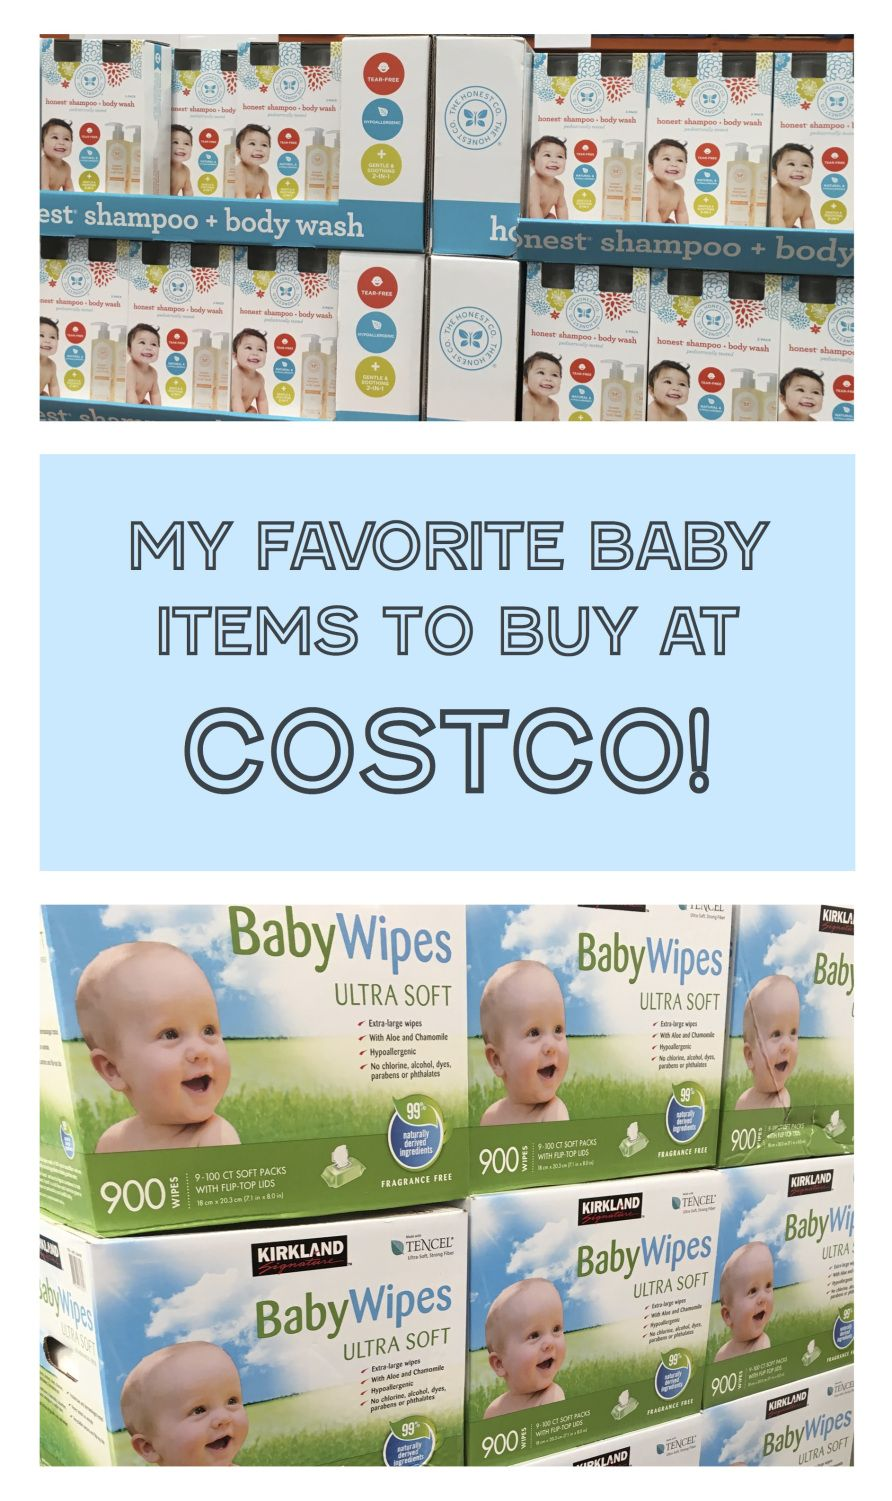 My Favorite BABY Items to Buy at Costco! | Pinterest | Costco, Baby ...